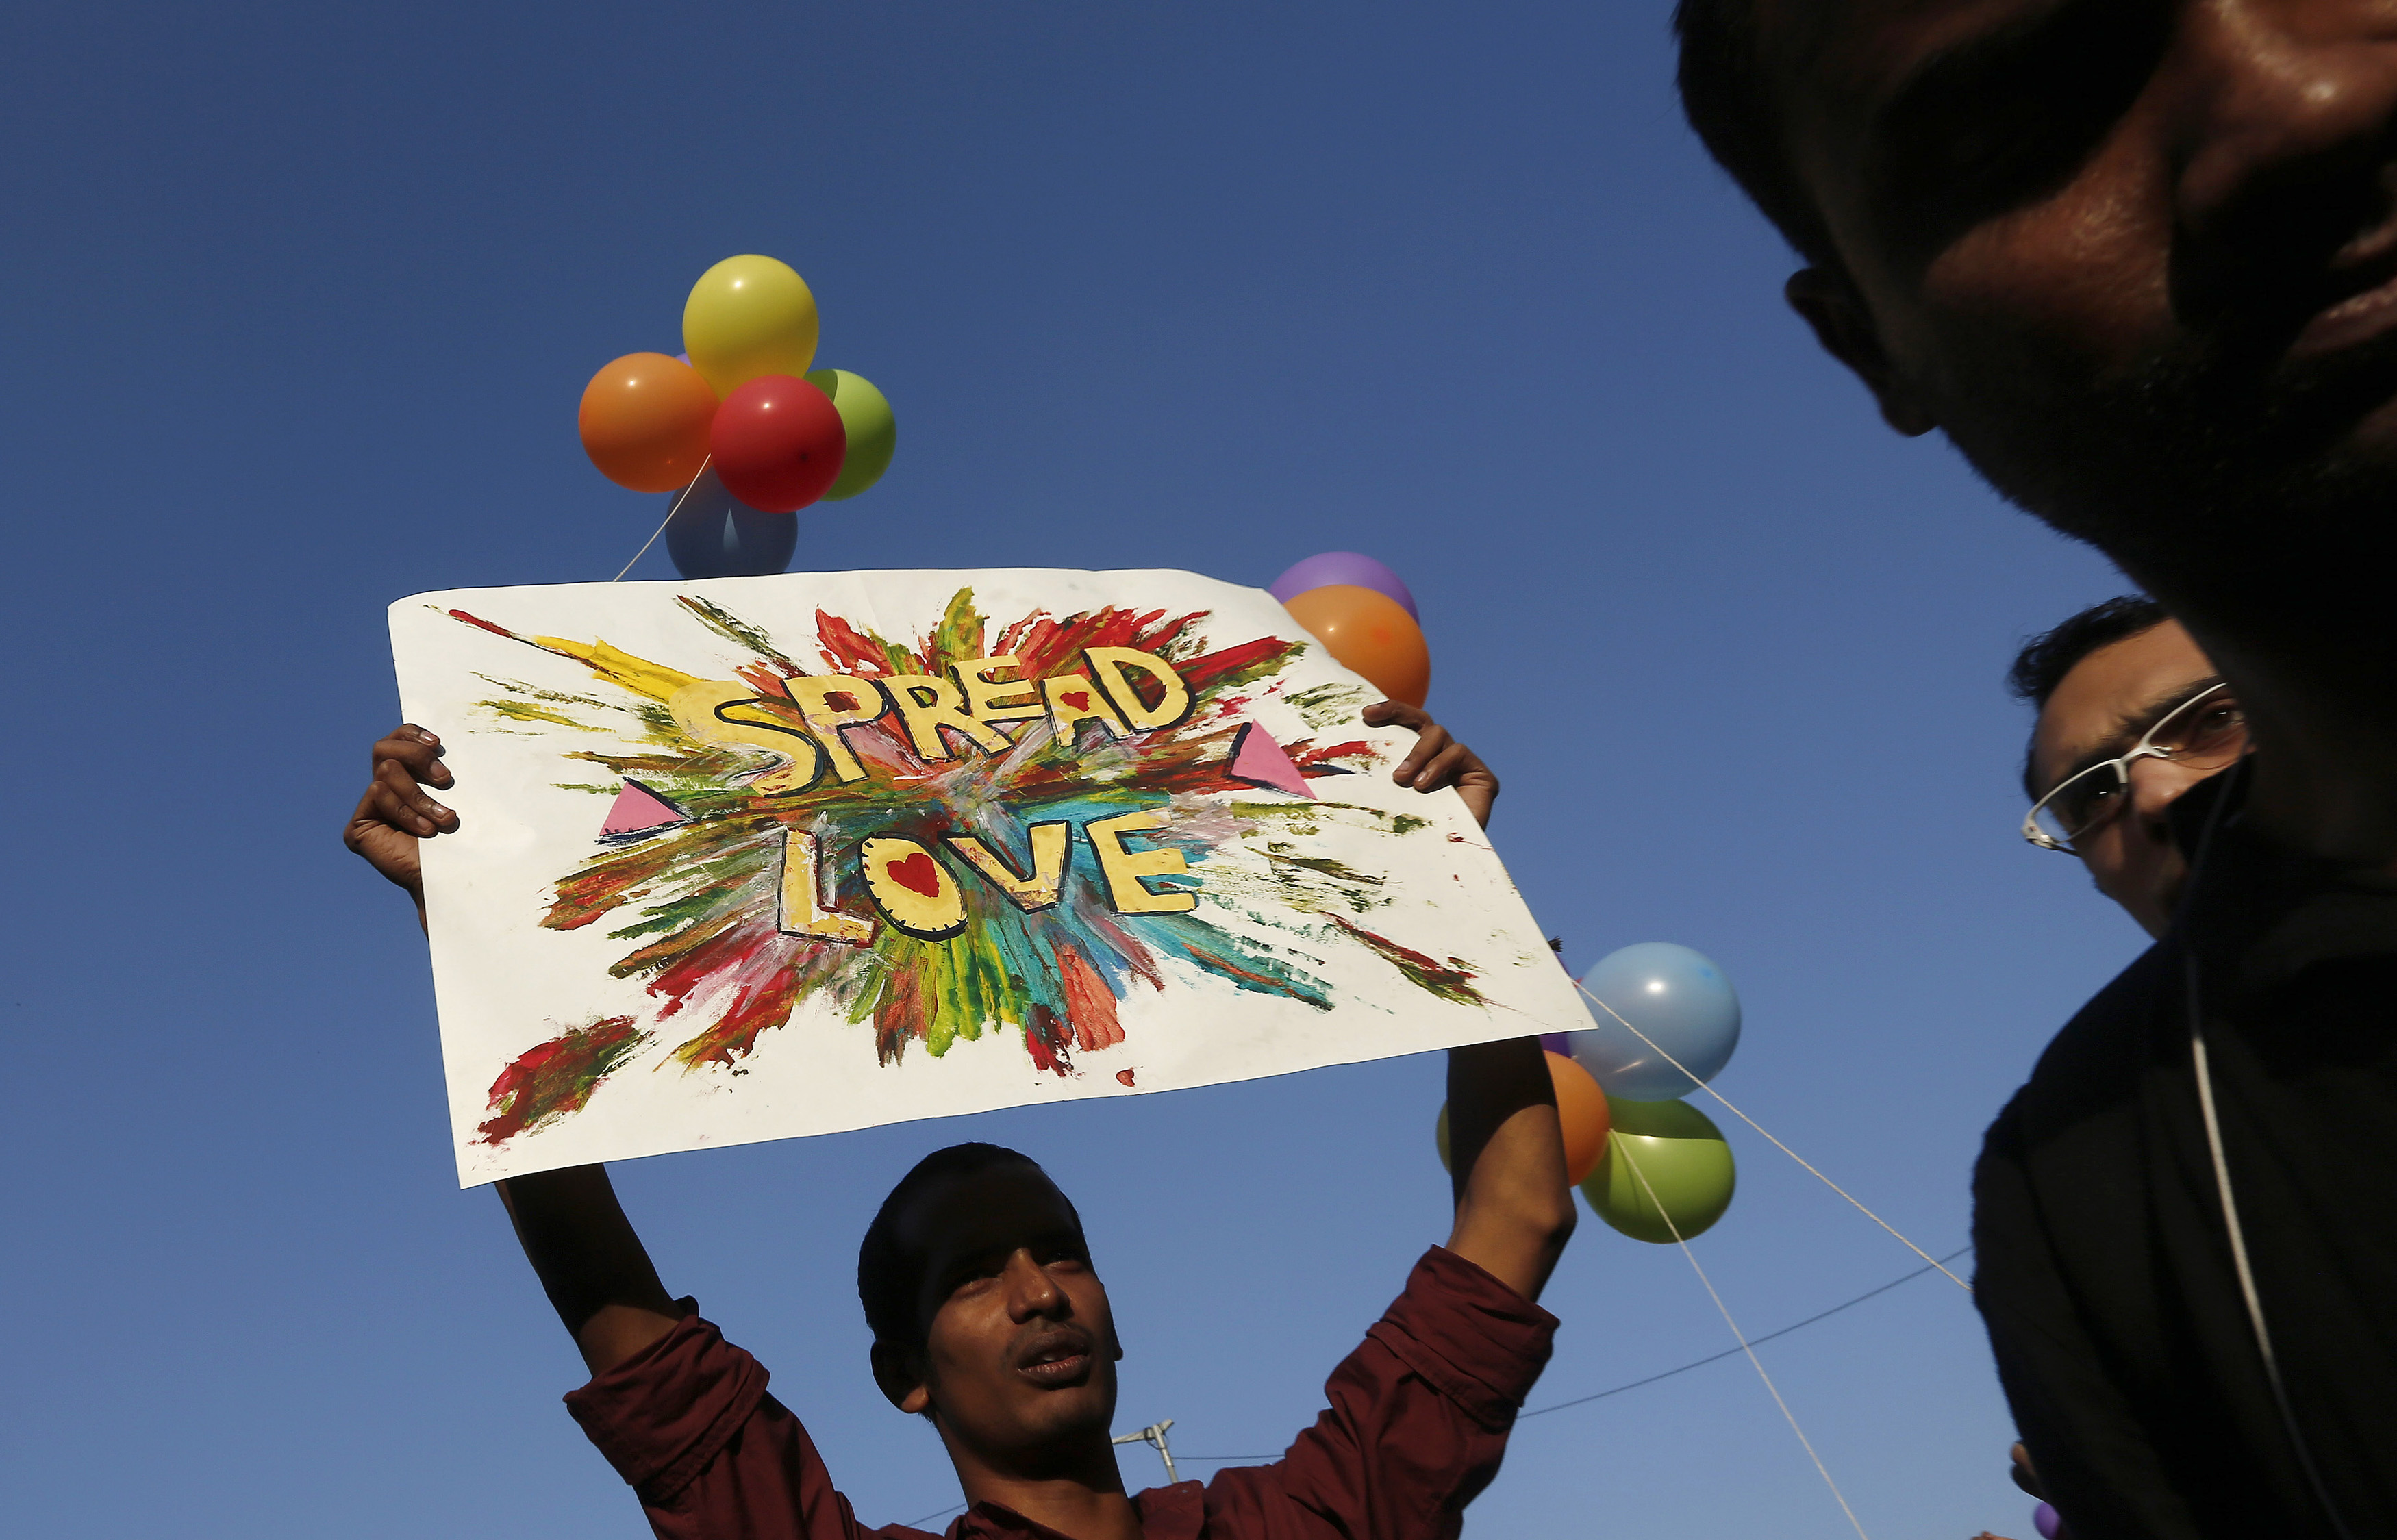 A participant holds a placard during Delhi Queer Pride Parade, an event promoting gay, lesbian, bisexual and transgender rights, in New Delhi on Nov. 30, 2014